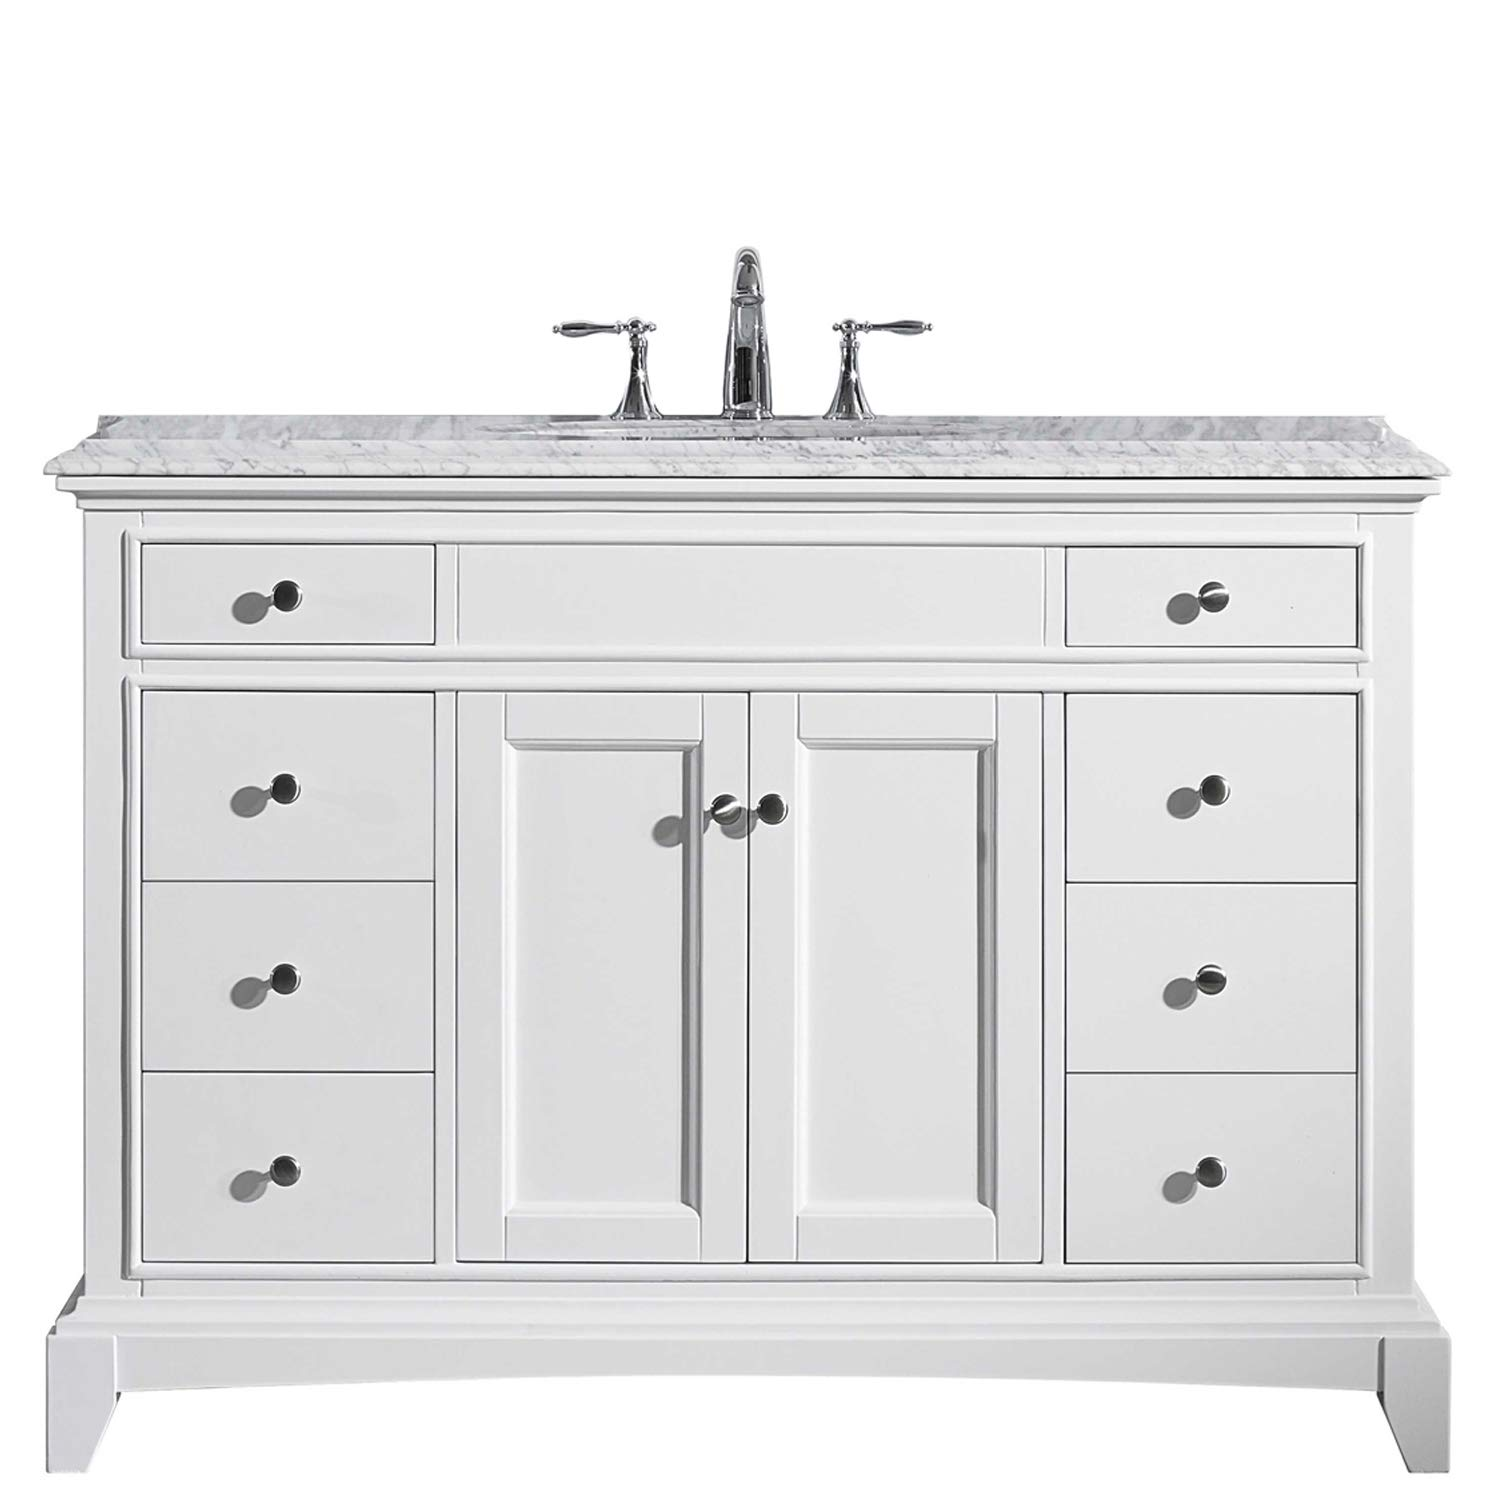 Eviva EVVN709-42WH Elite Stamford 42 Solid Wood Bathroom Vanity Set with Double OG White Carrera Marble Top White Undermount Porcelain Sink Combination,